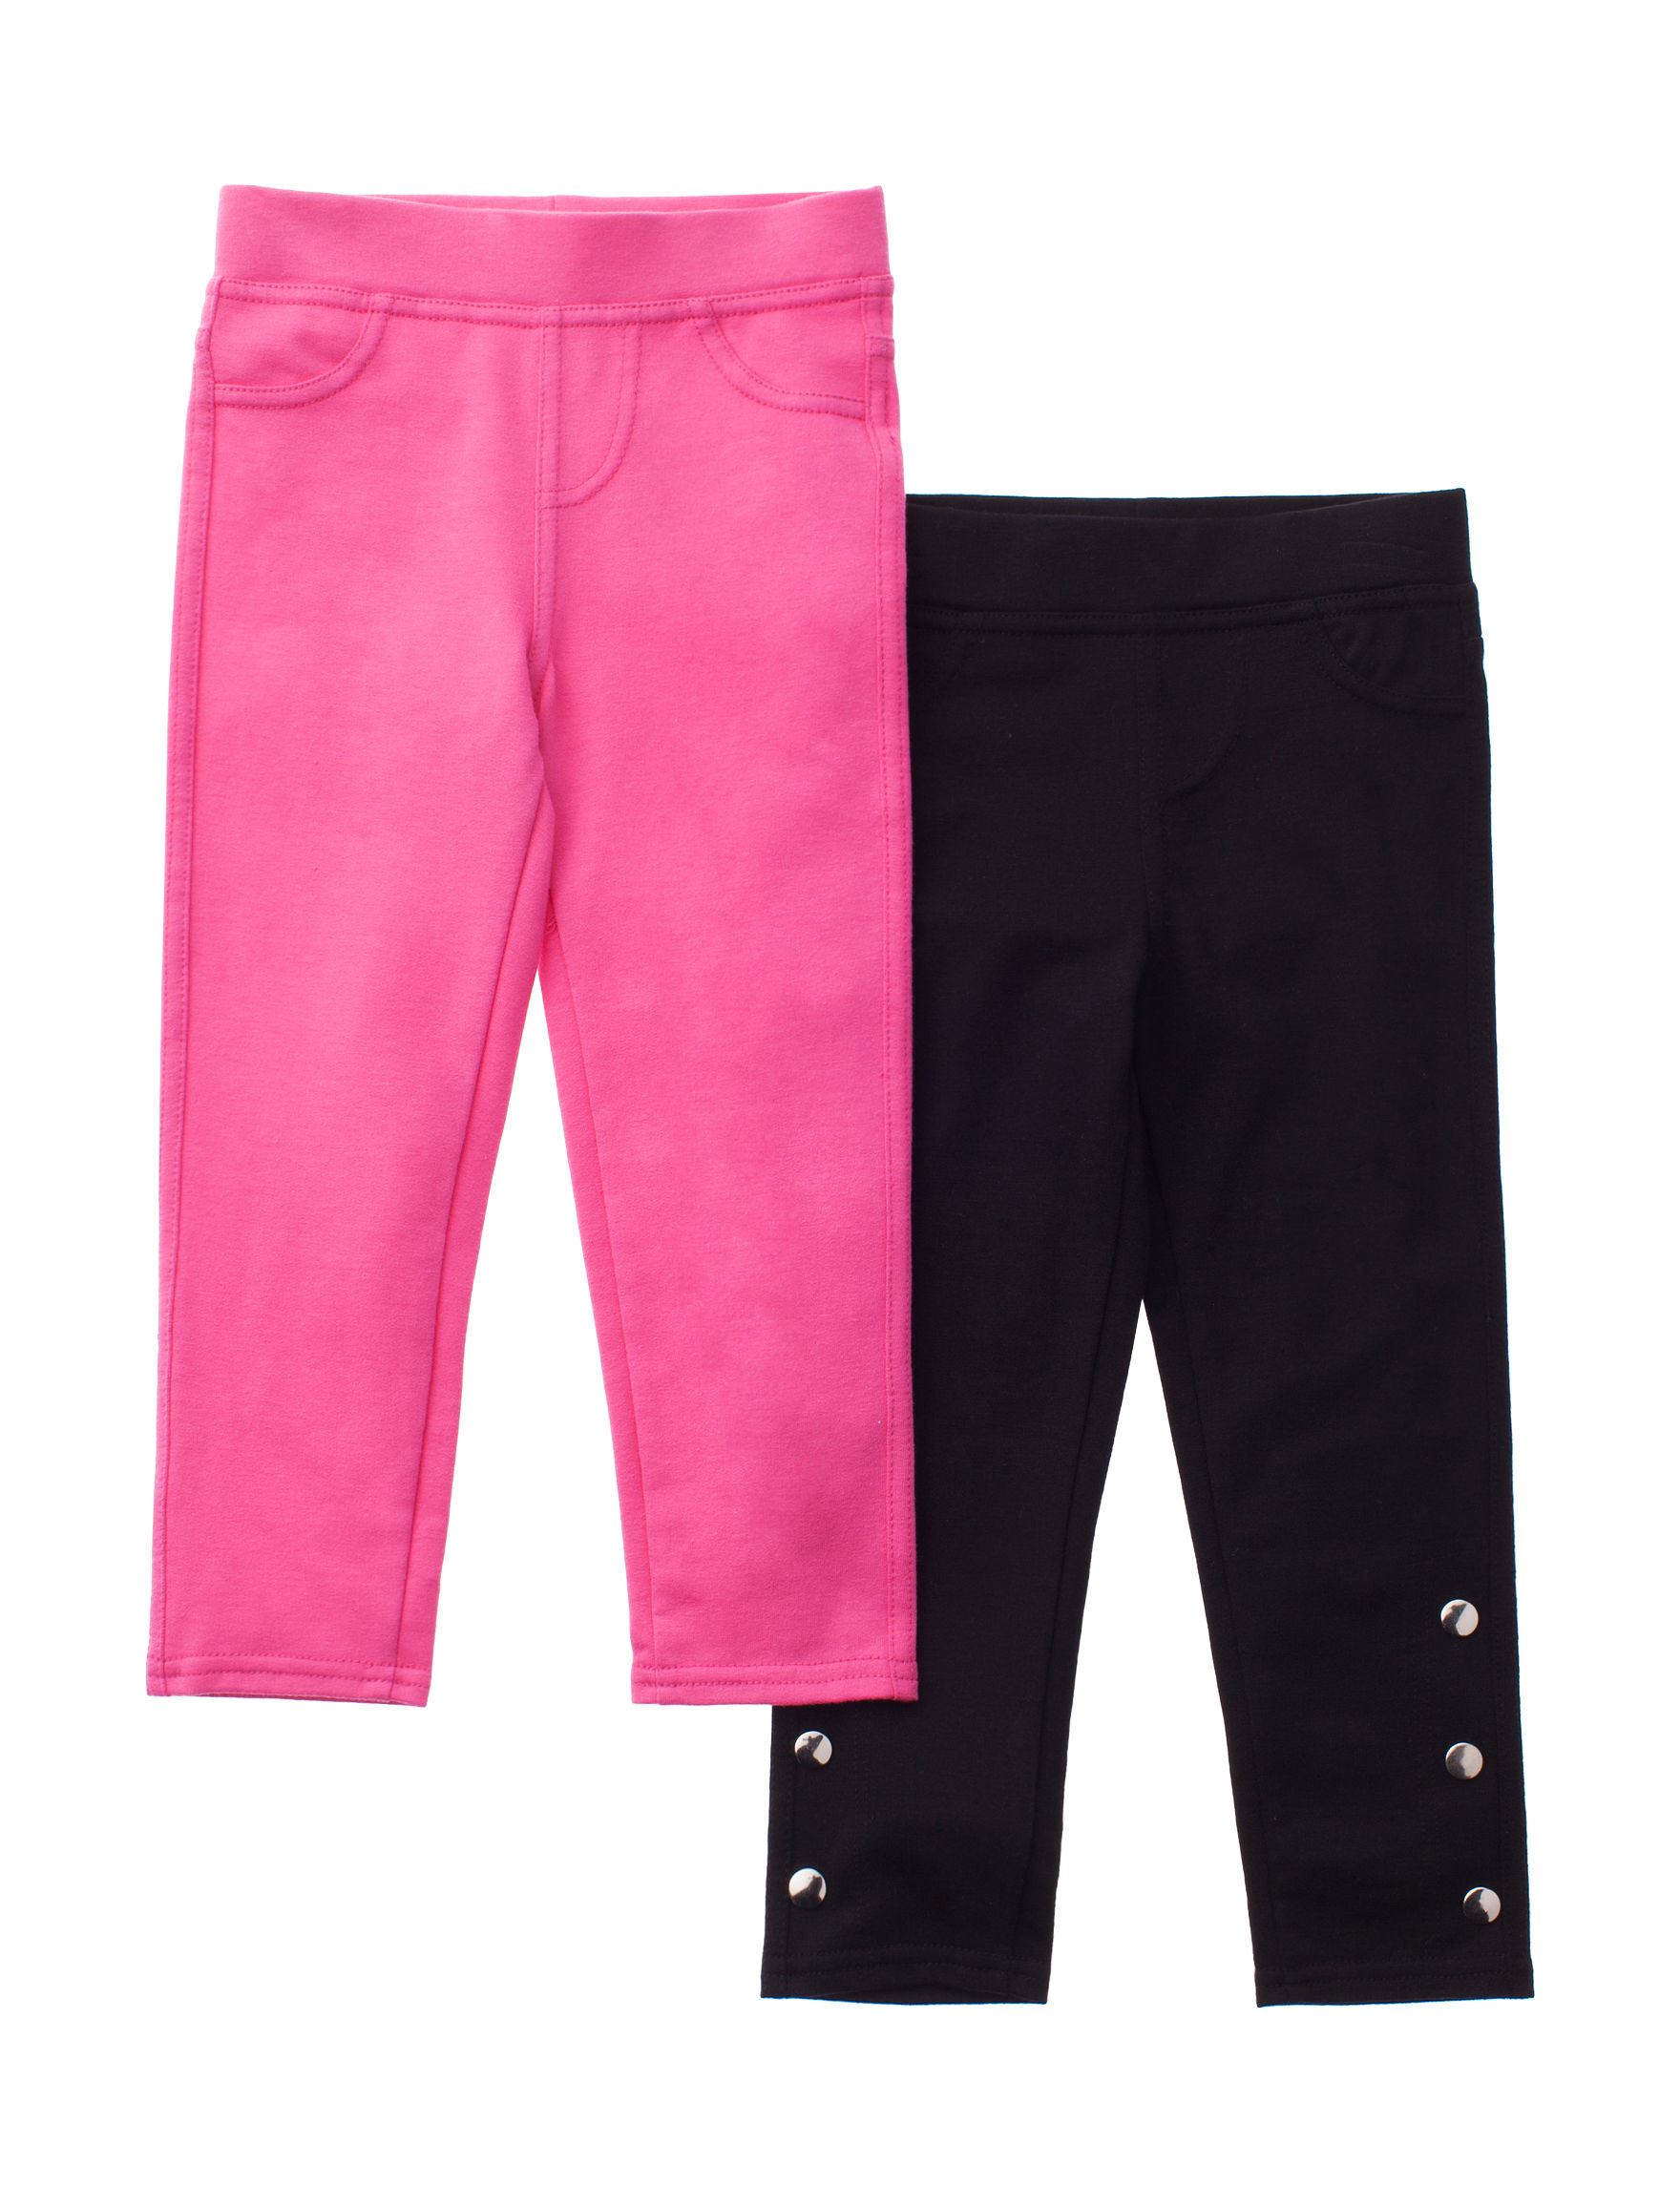 Wishful Park Black / Pink